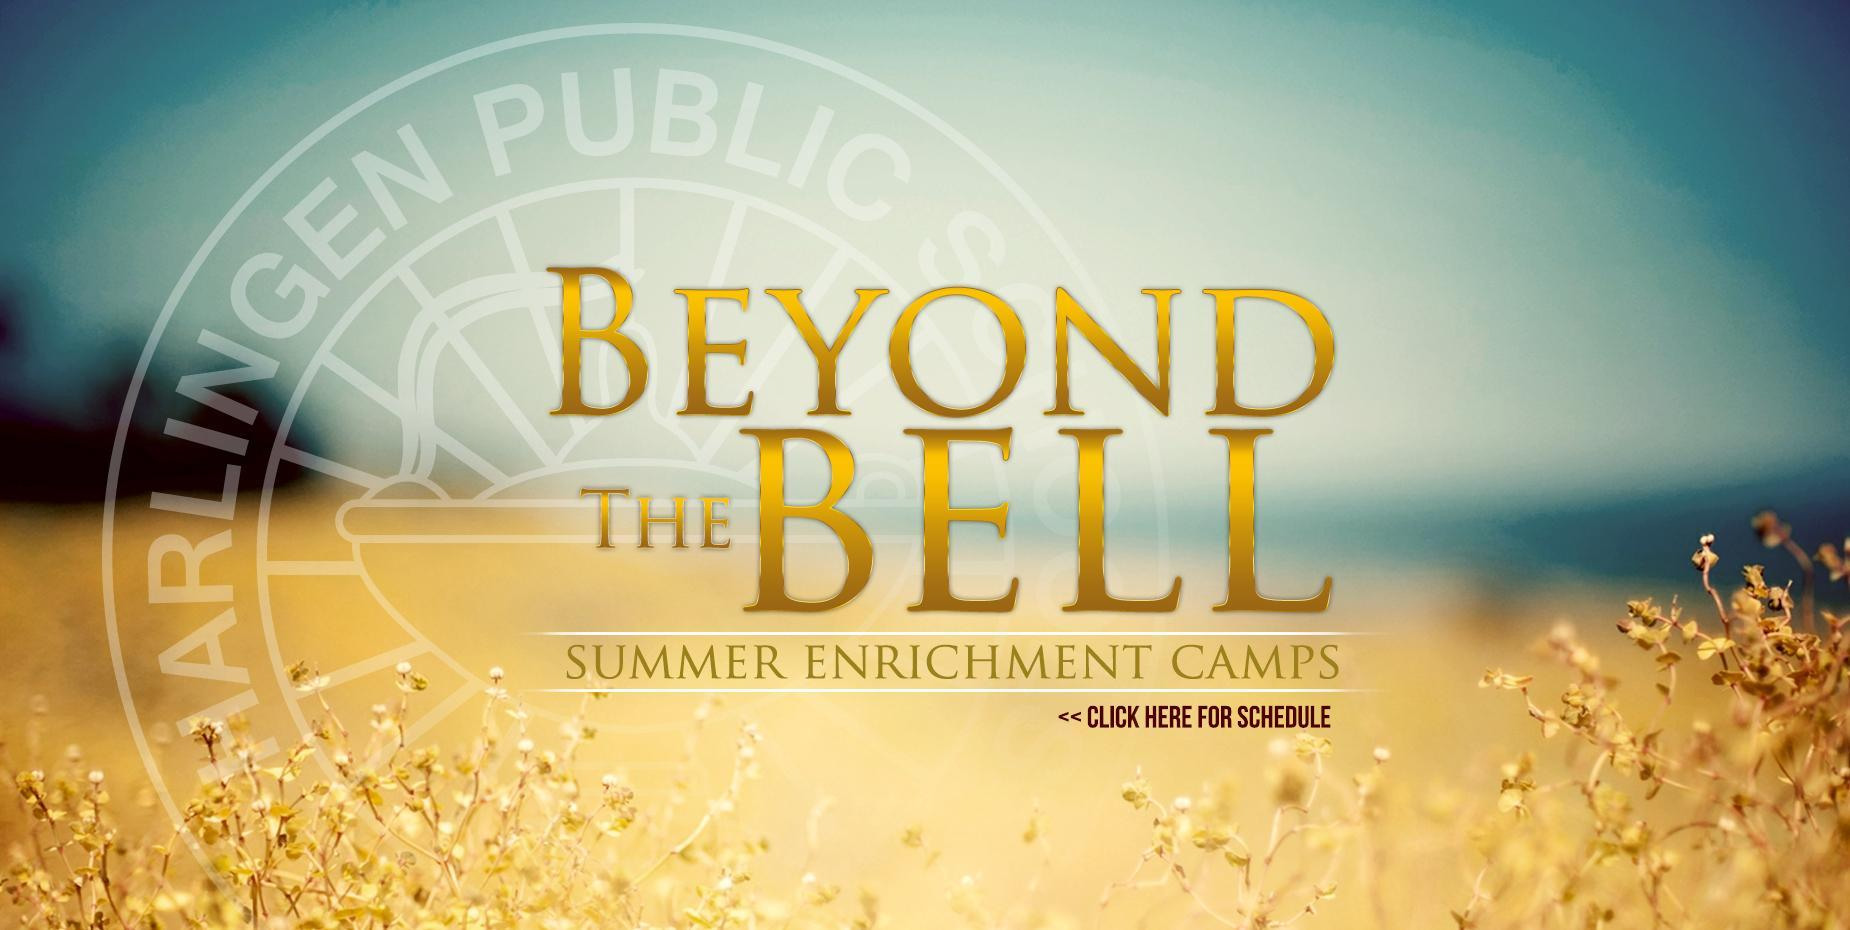 Beyond the Bell Schedule